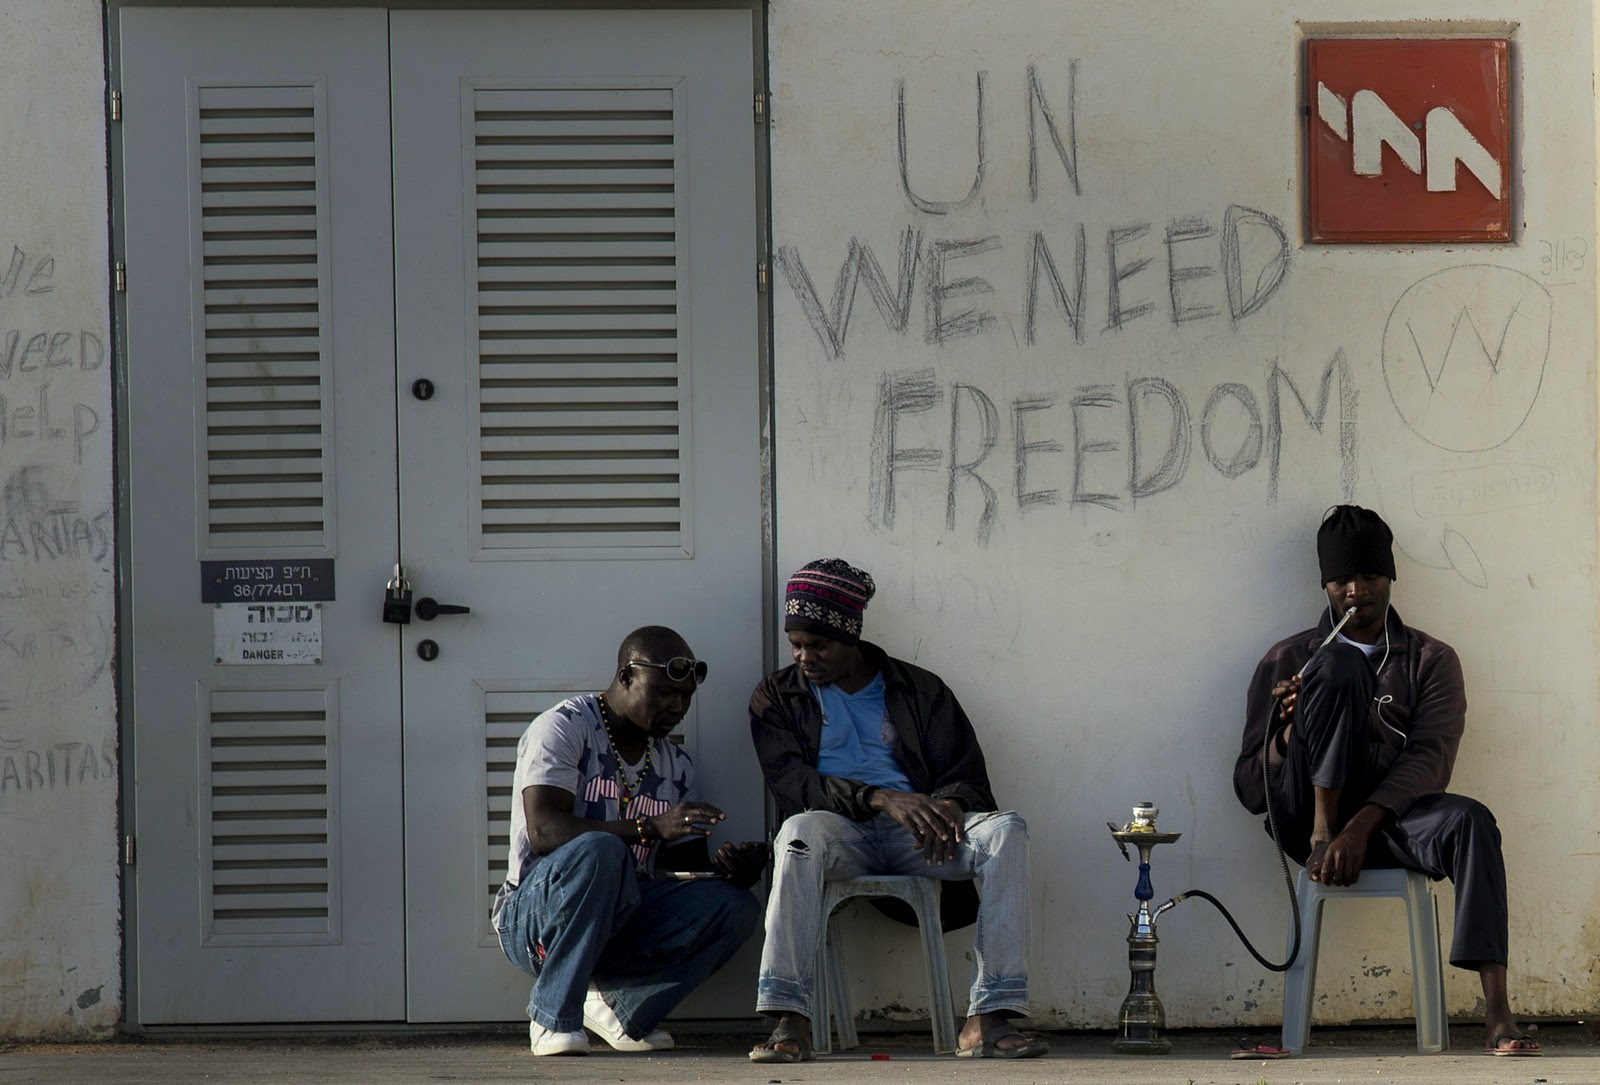 African migrants sit outside Holot detention center in the Negev Desert, southern Israel, Tuesday, April 21, 2015. Tens of thousands of African asylum seekers have made their way to Israel in recent years. Most of them came from Eritrea, an eastern African nation with one of the world's most dismal human rights records. (AP Photo/Tsafrir Abayov)